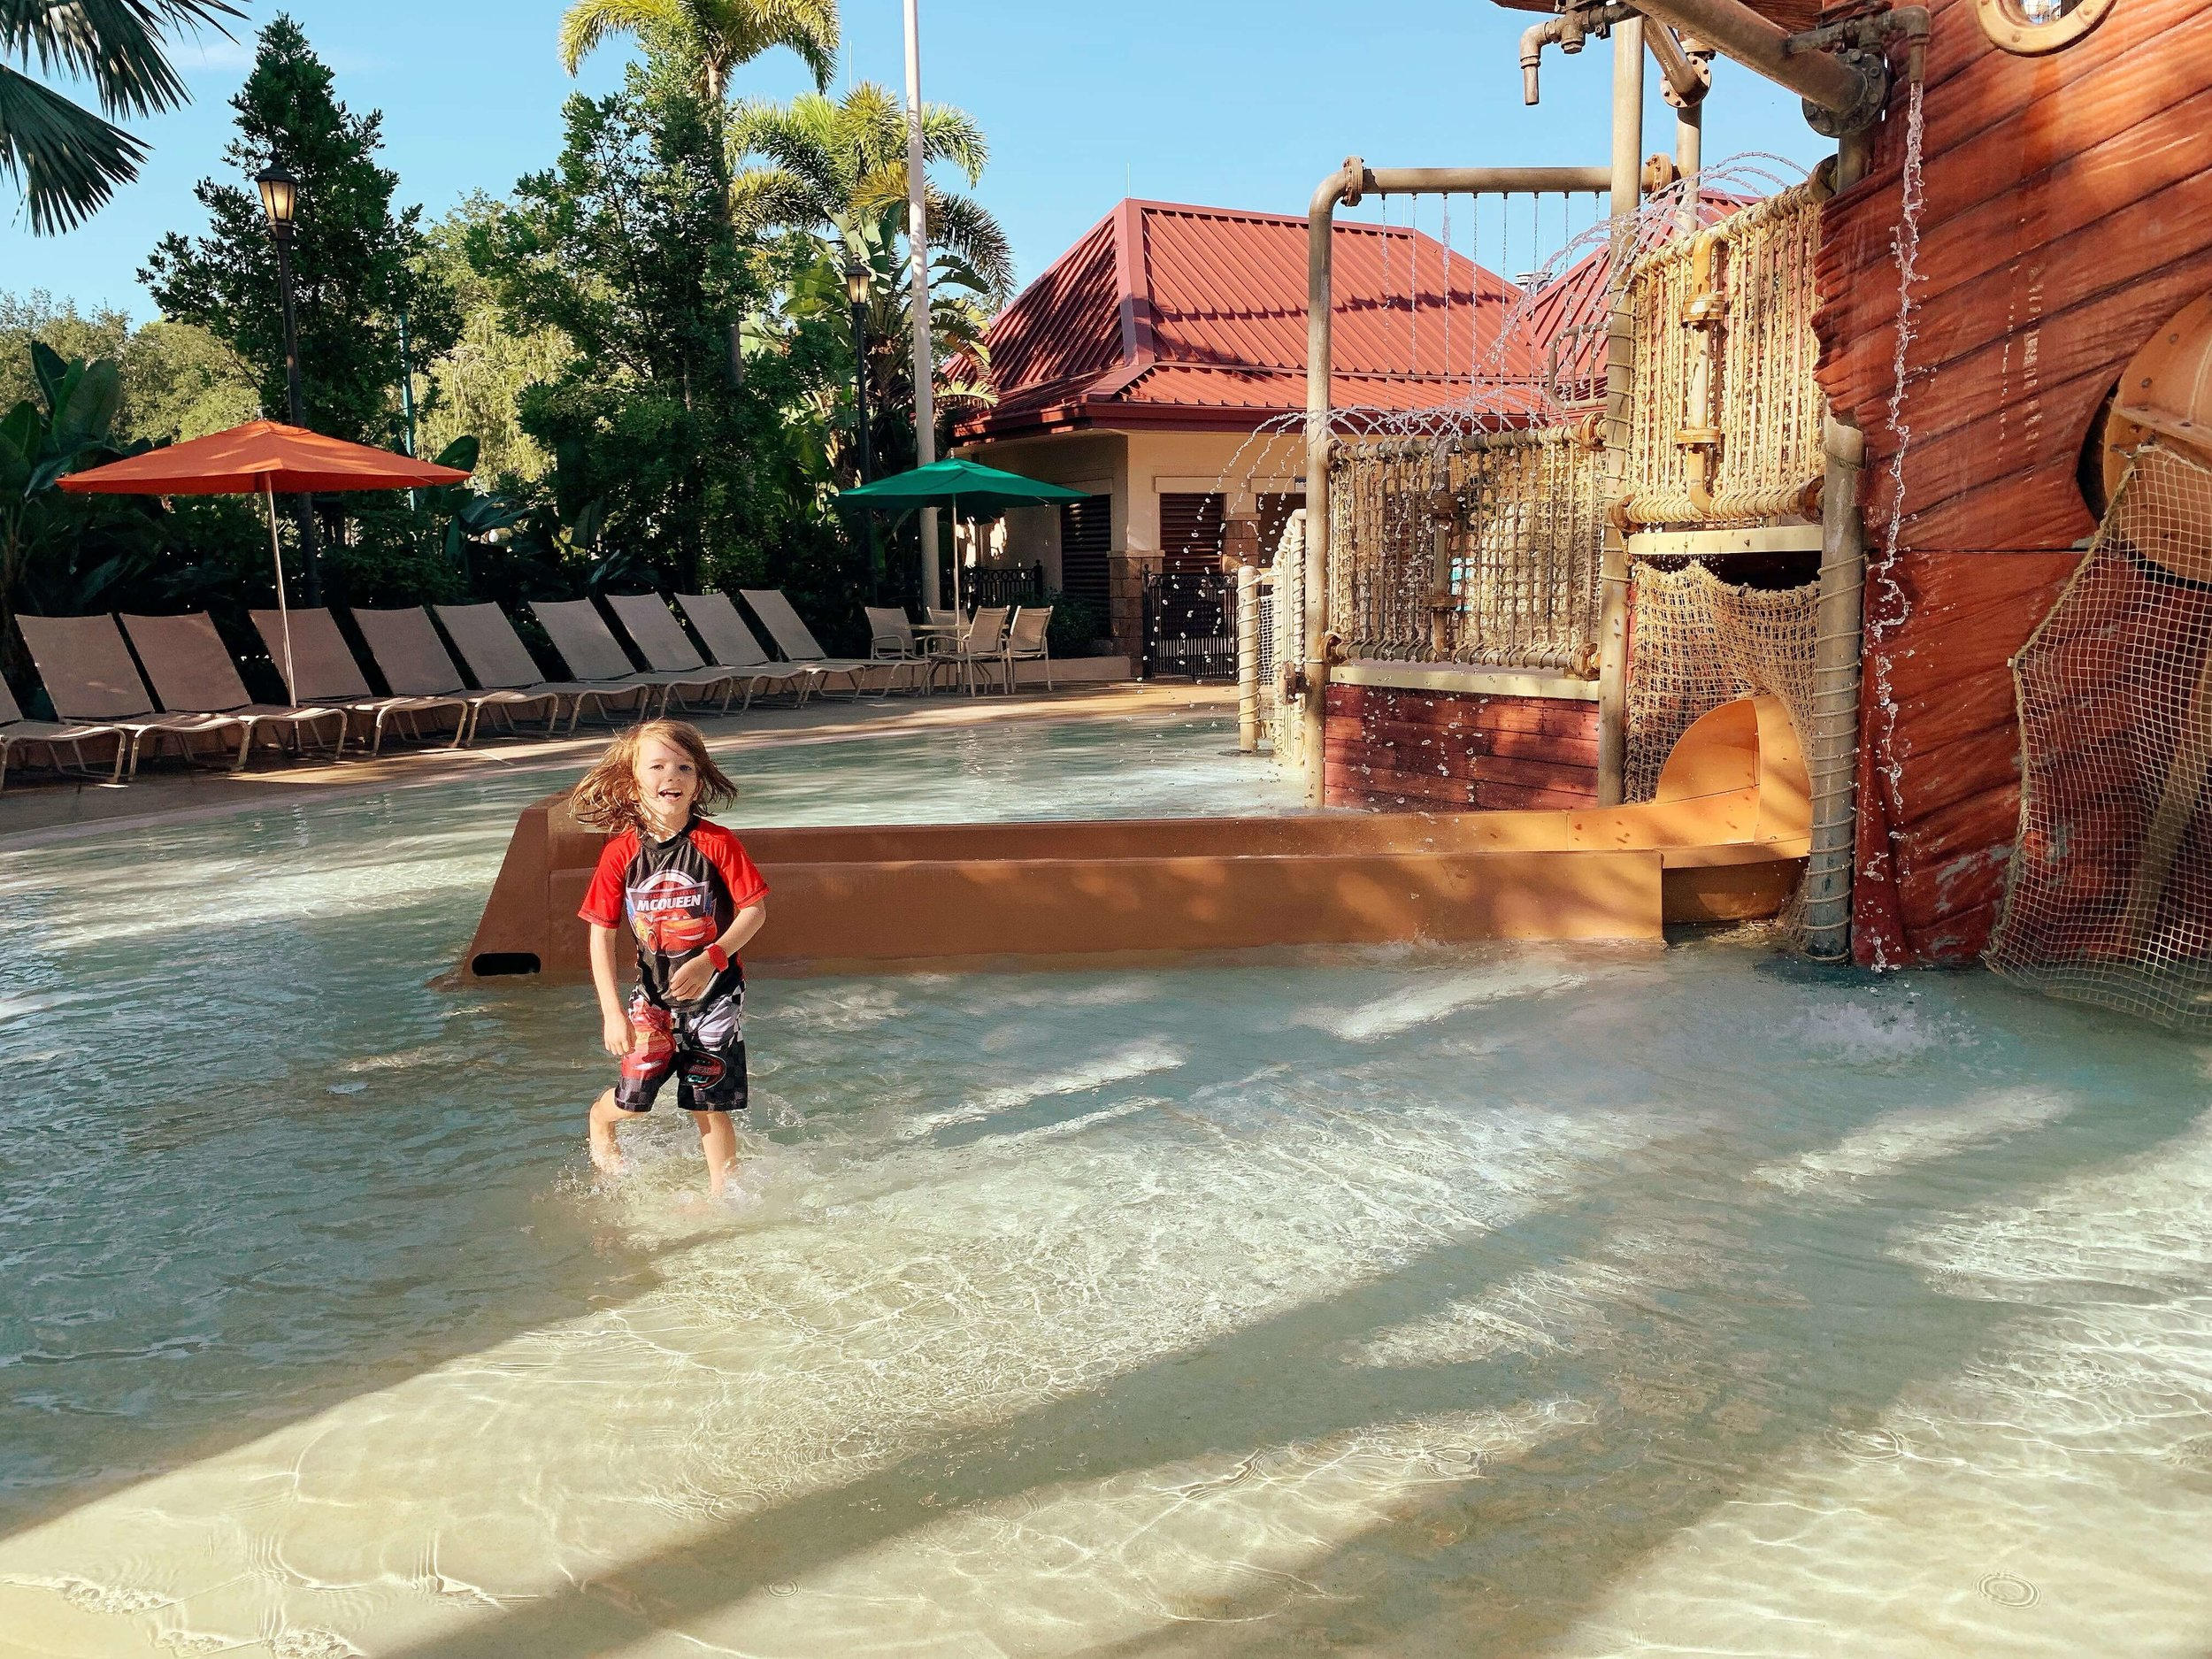 Playing in the splash pad